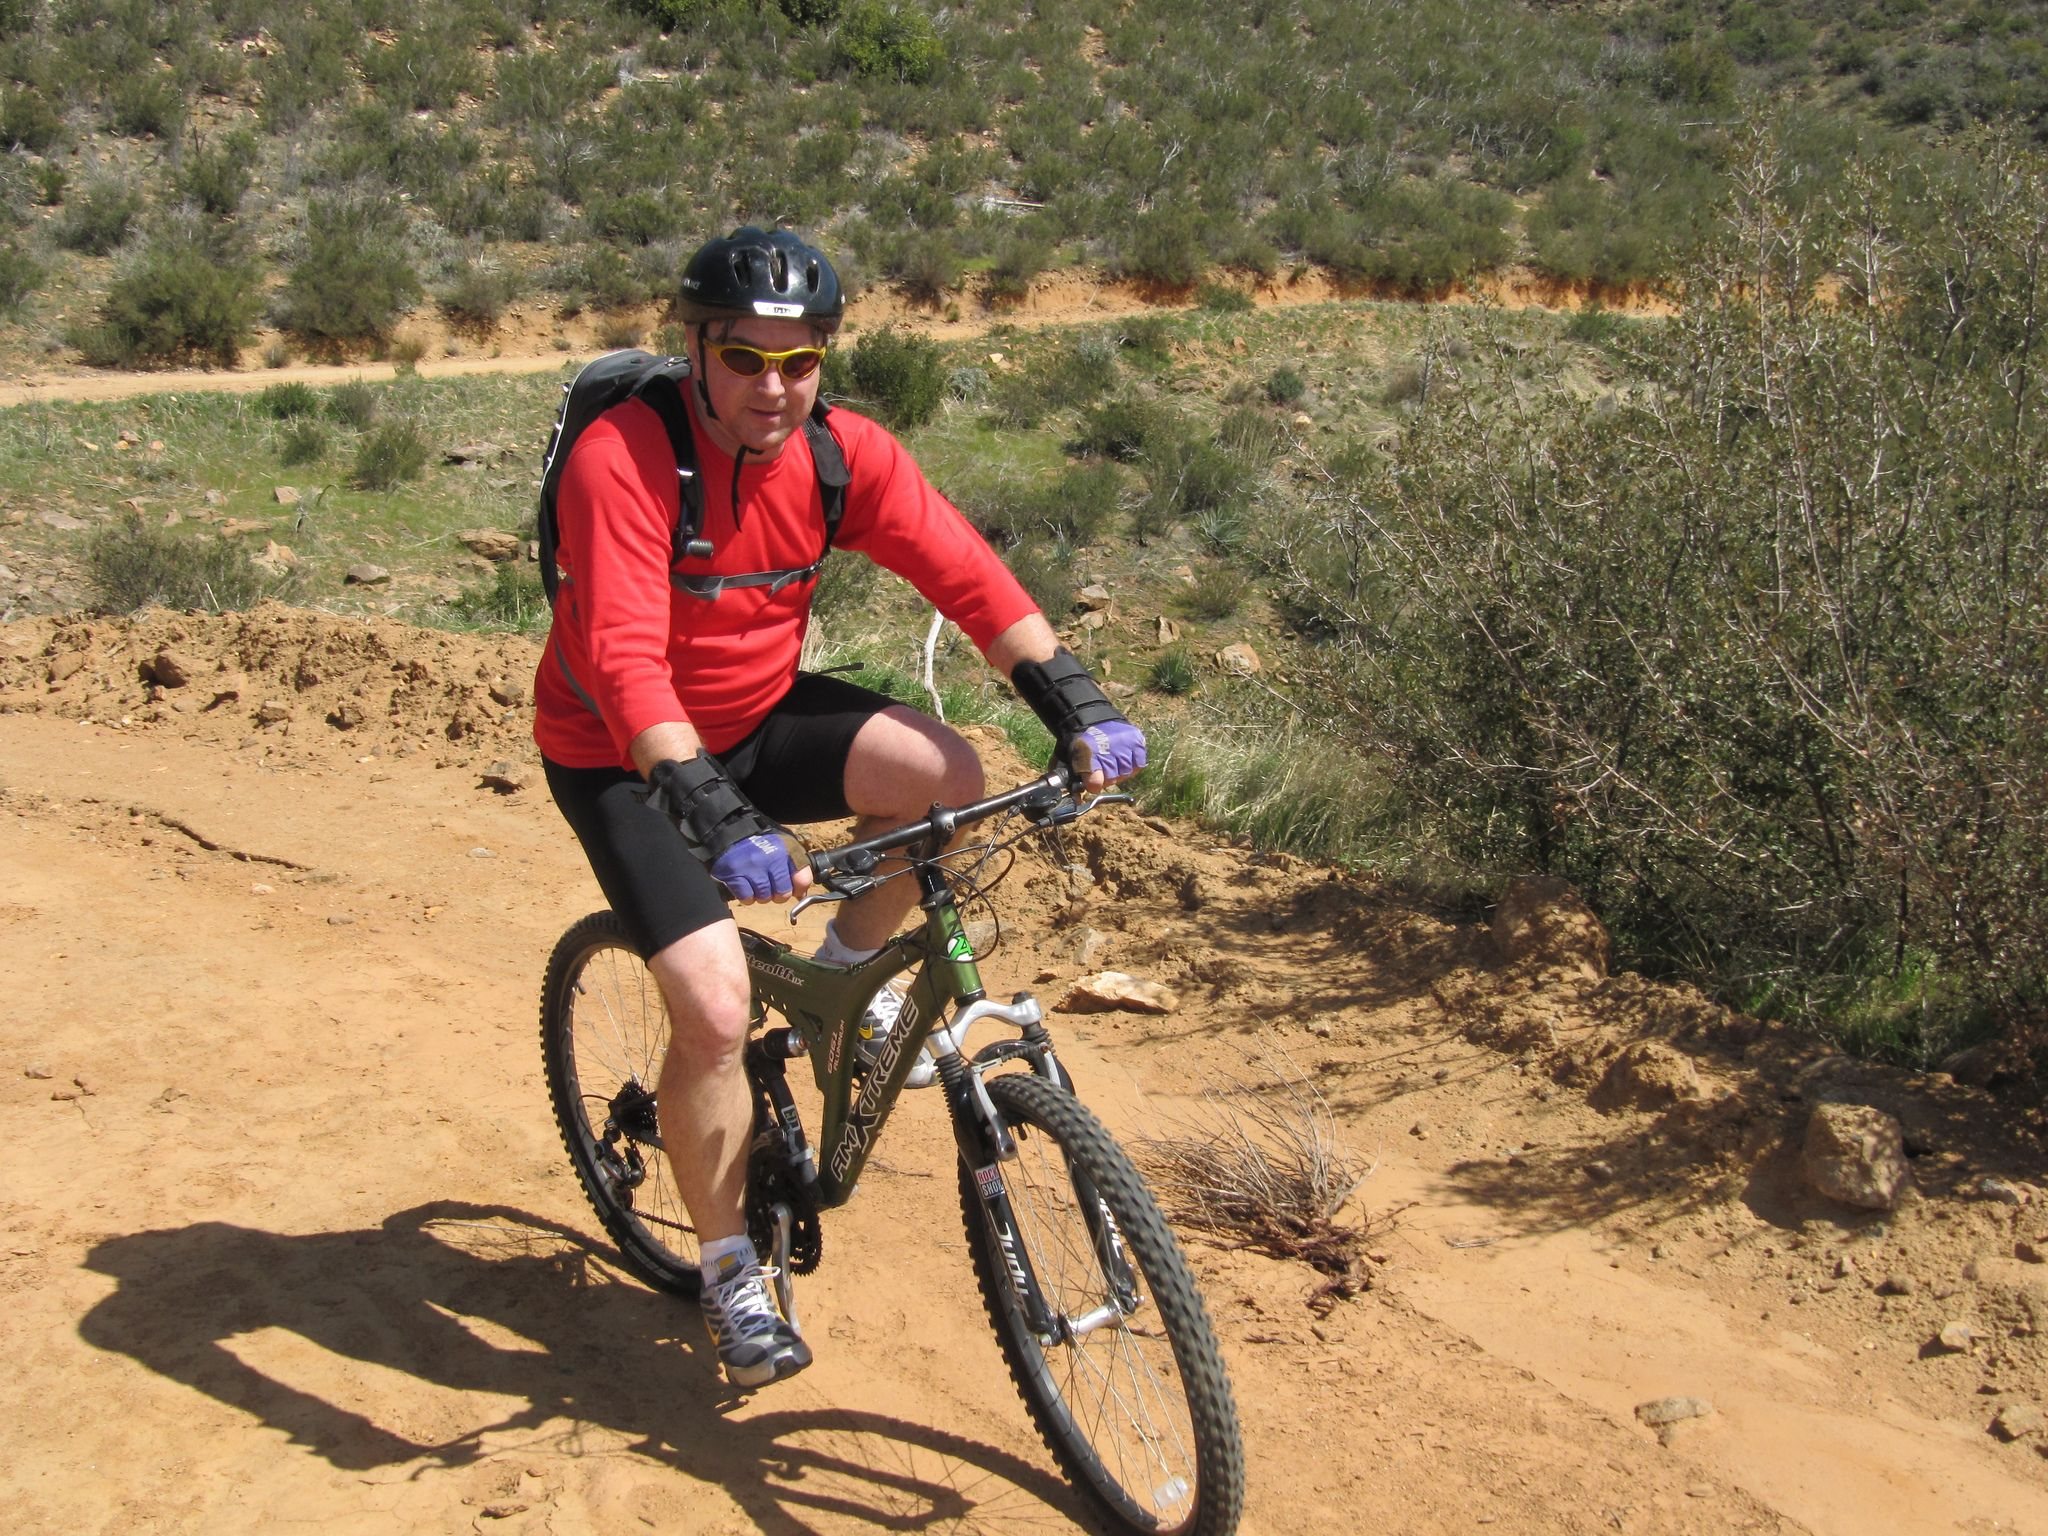 Chris Roberts Mountain Biking at Cleveland National Forest jeep track - Photo by Patty Mooney of San Diego video production company Crystal Pyramid Productions - http://sandiegovideoproduction.com